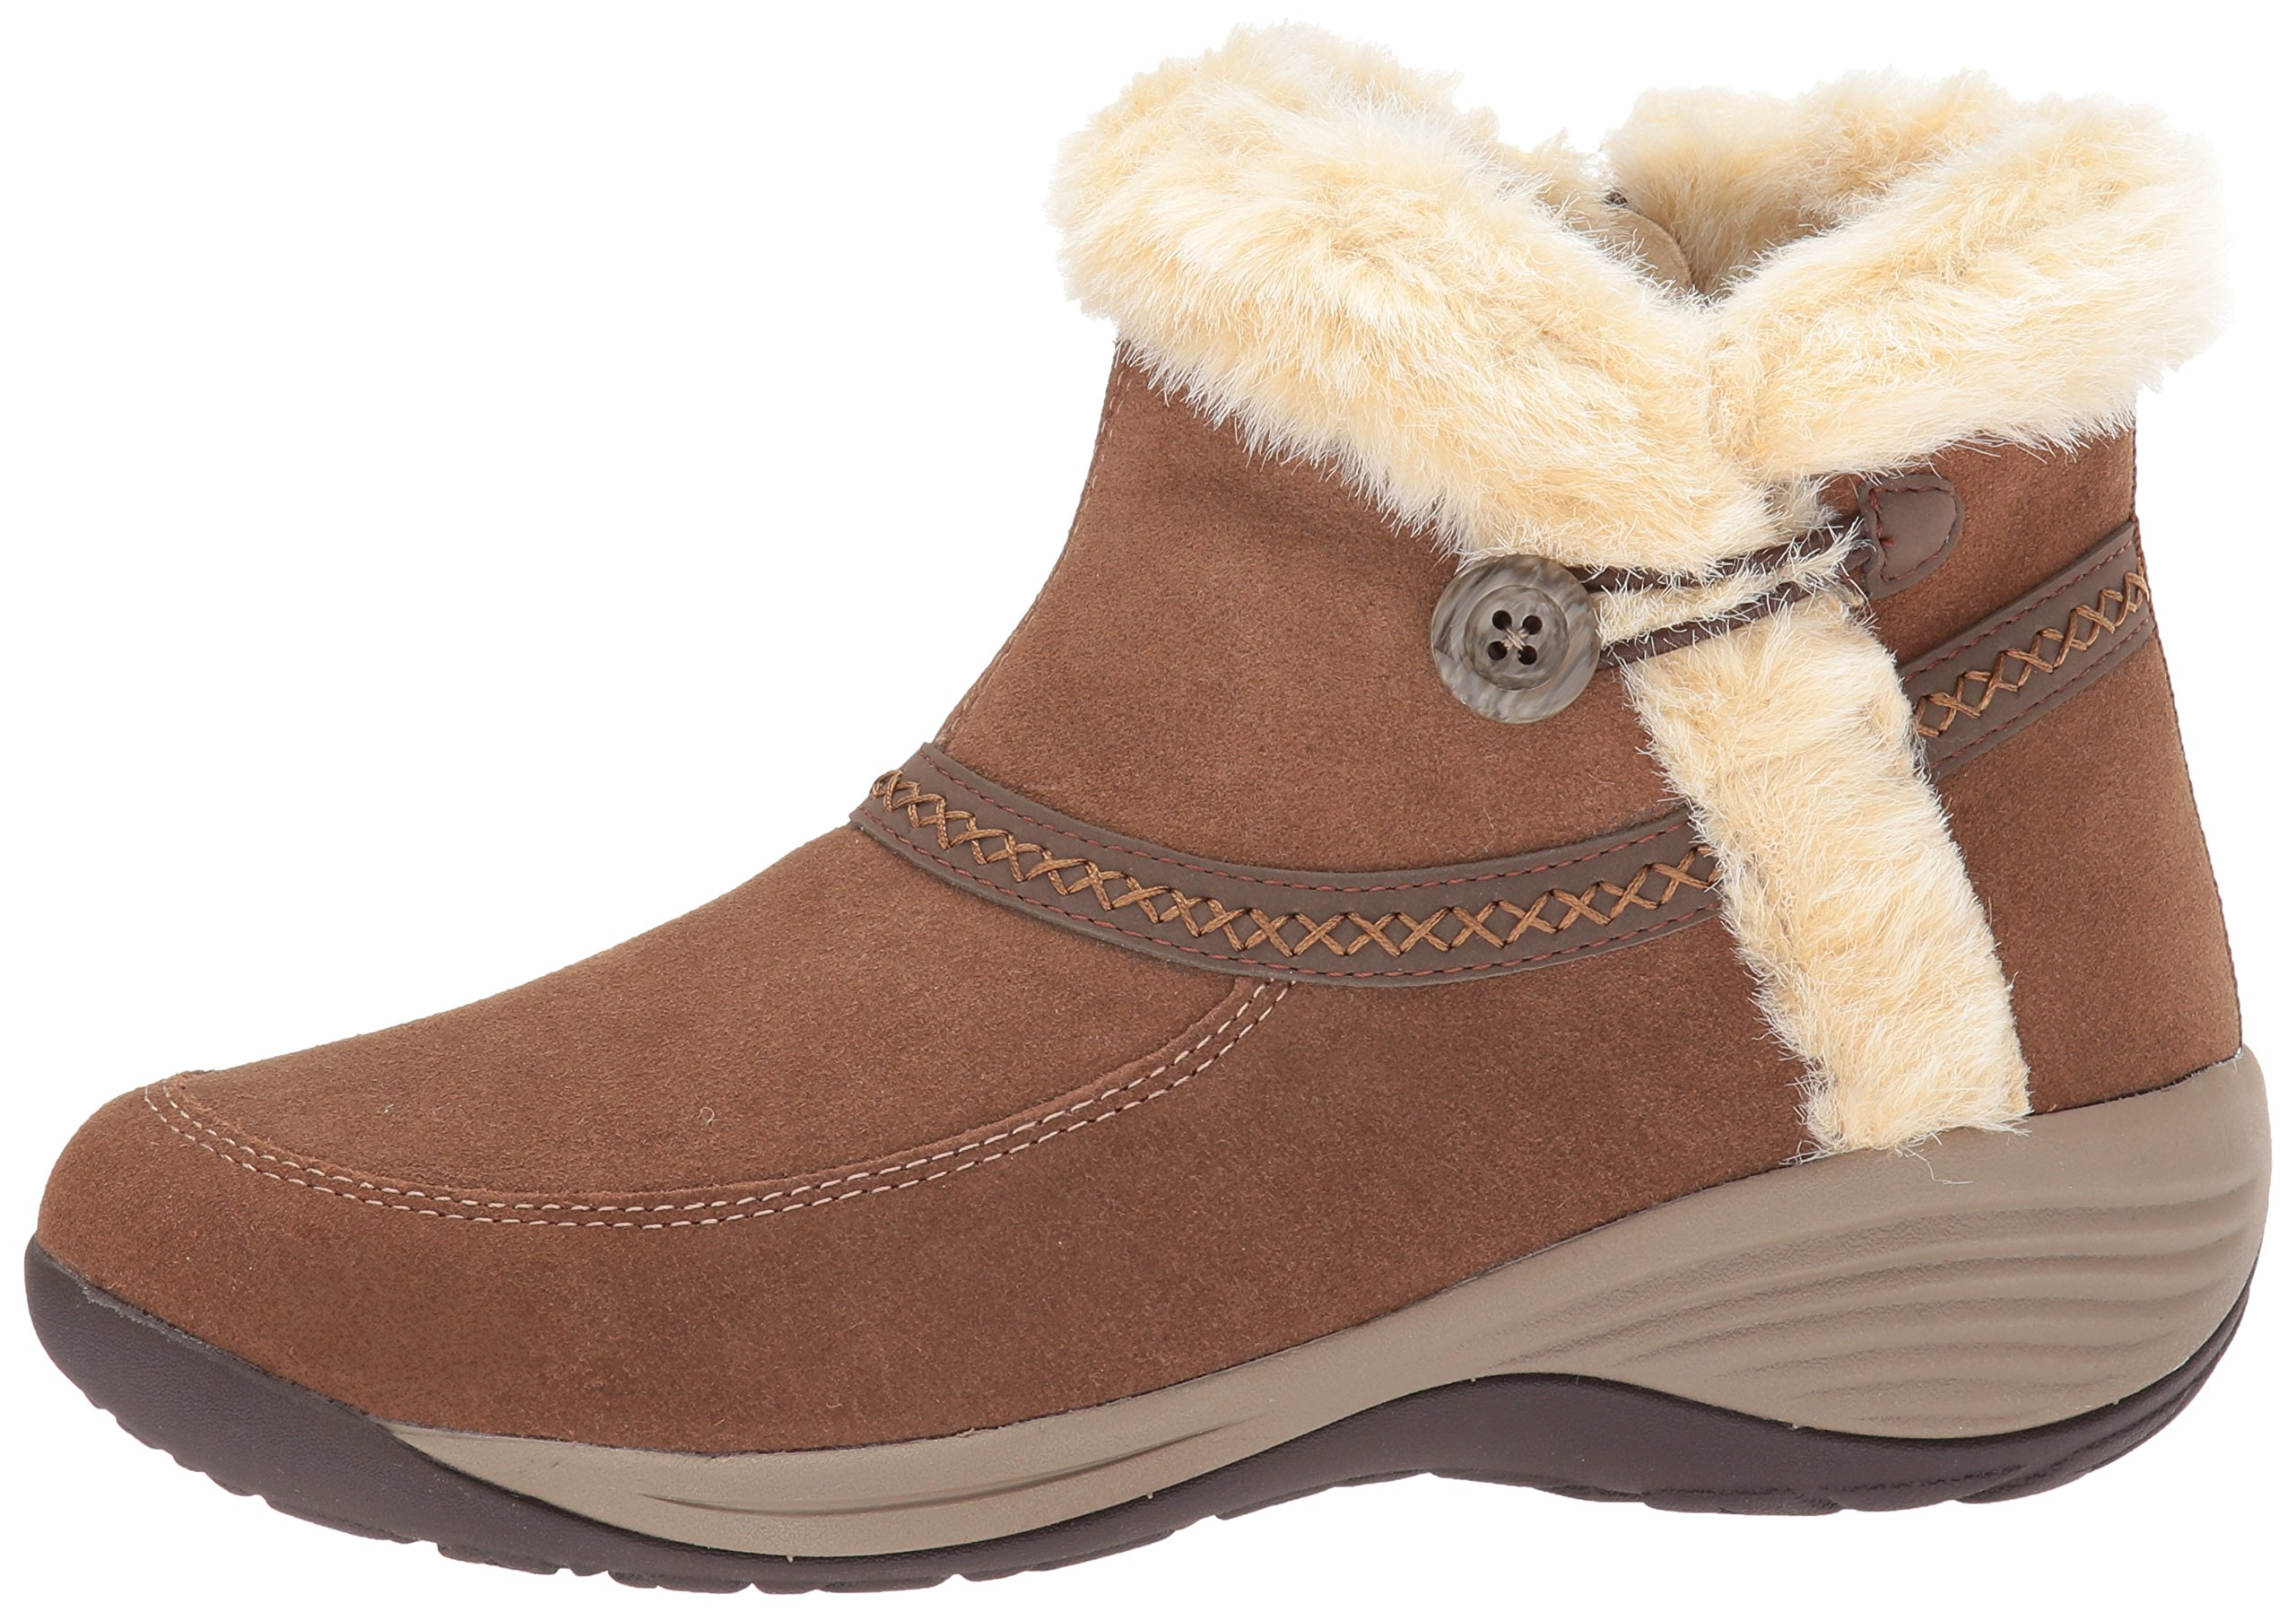 Easy Spirit Women's Icerink Ankle Bootie, Dark Natural Multi Suede, 6 W US by Easy Spirit (Image #5)